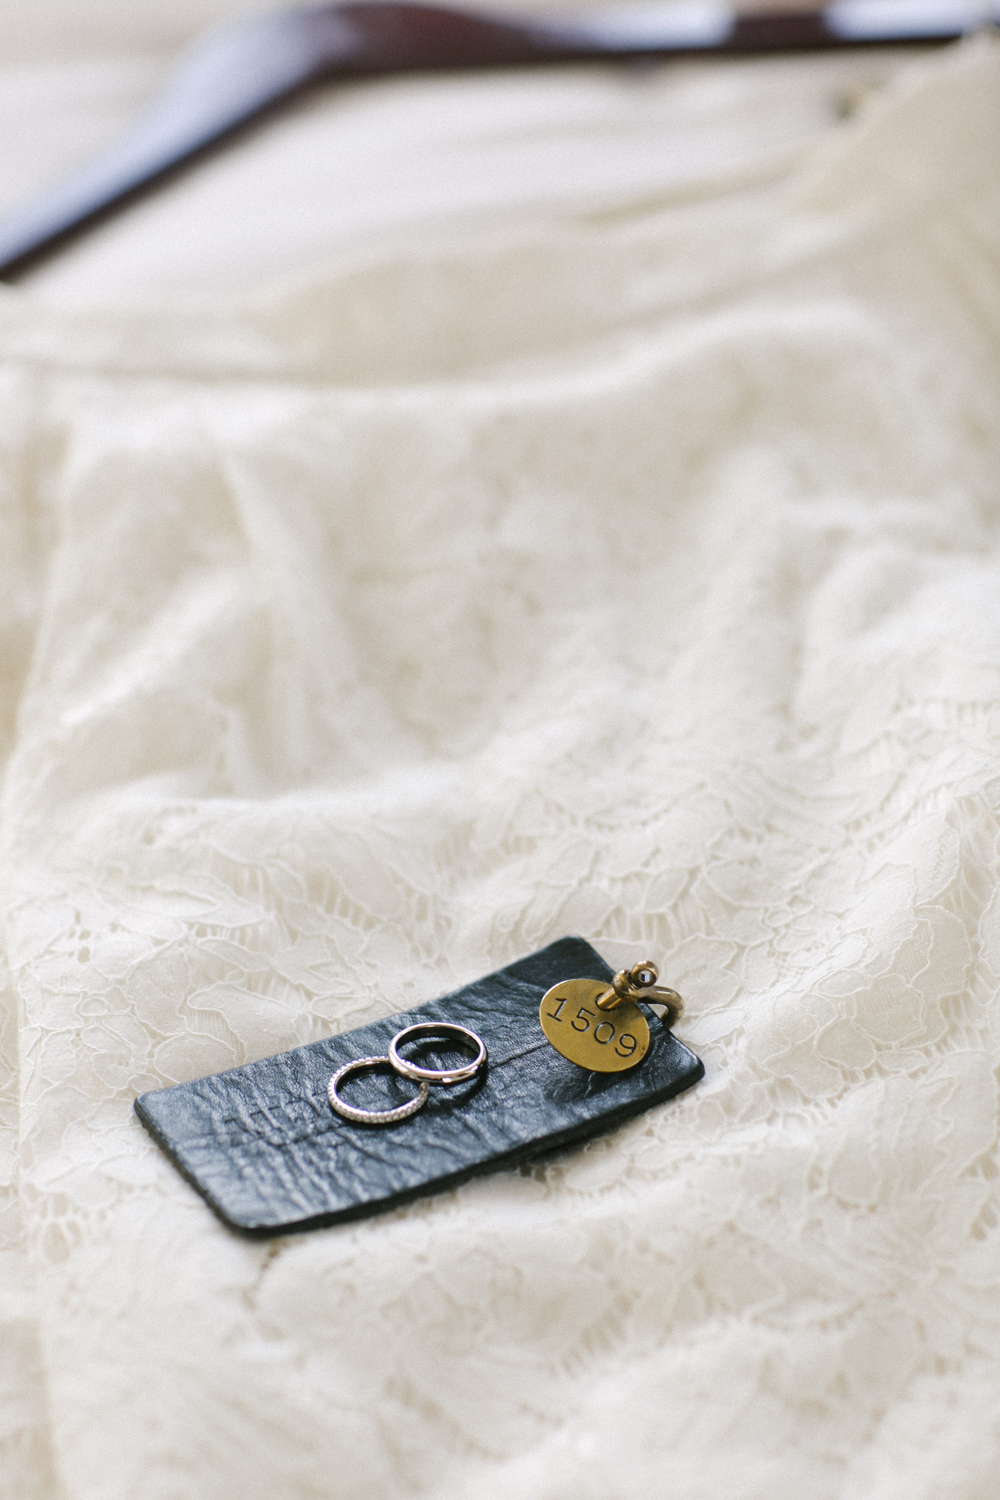 Wedding rings and lace dress detail